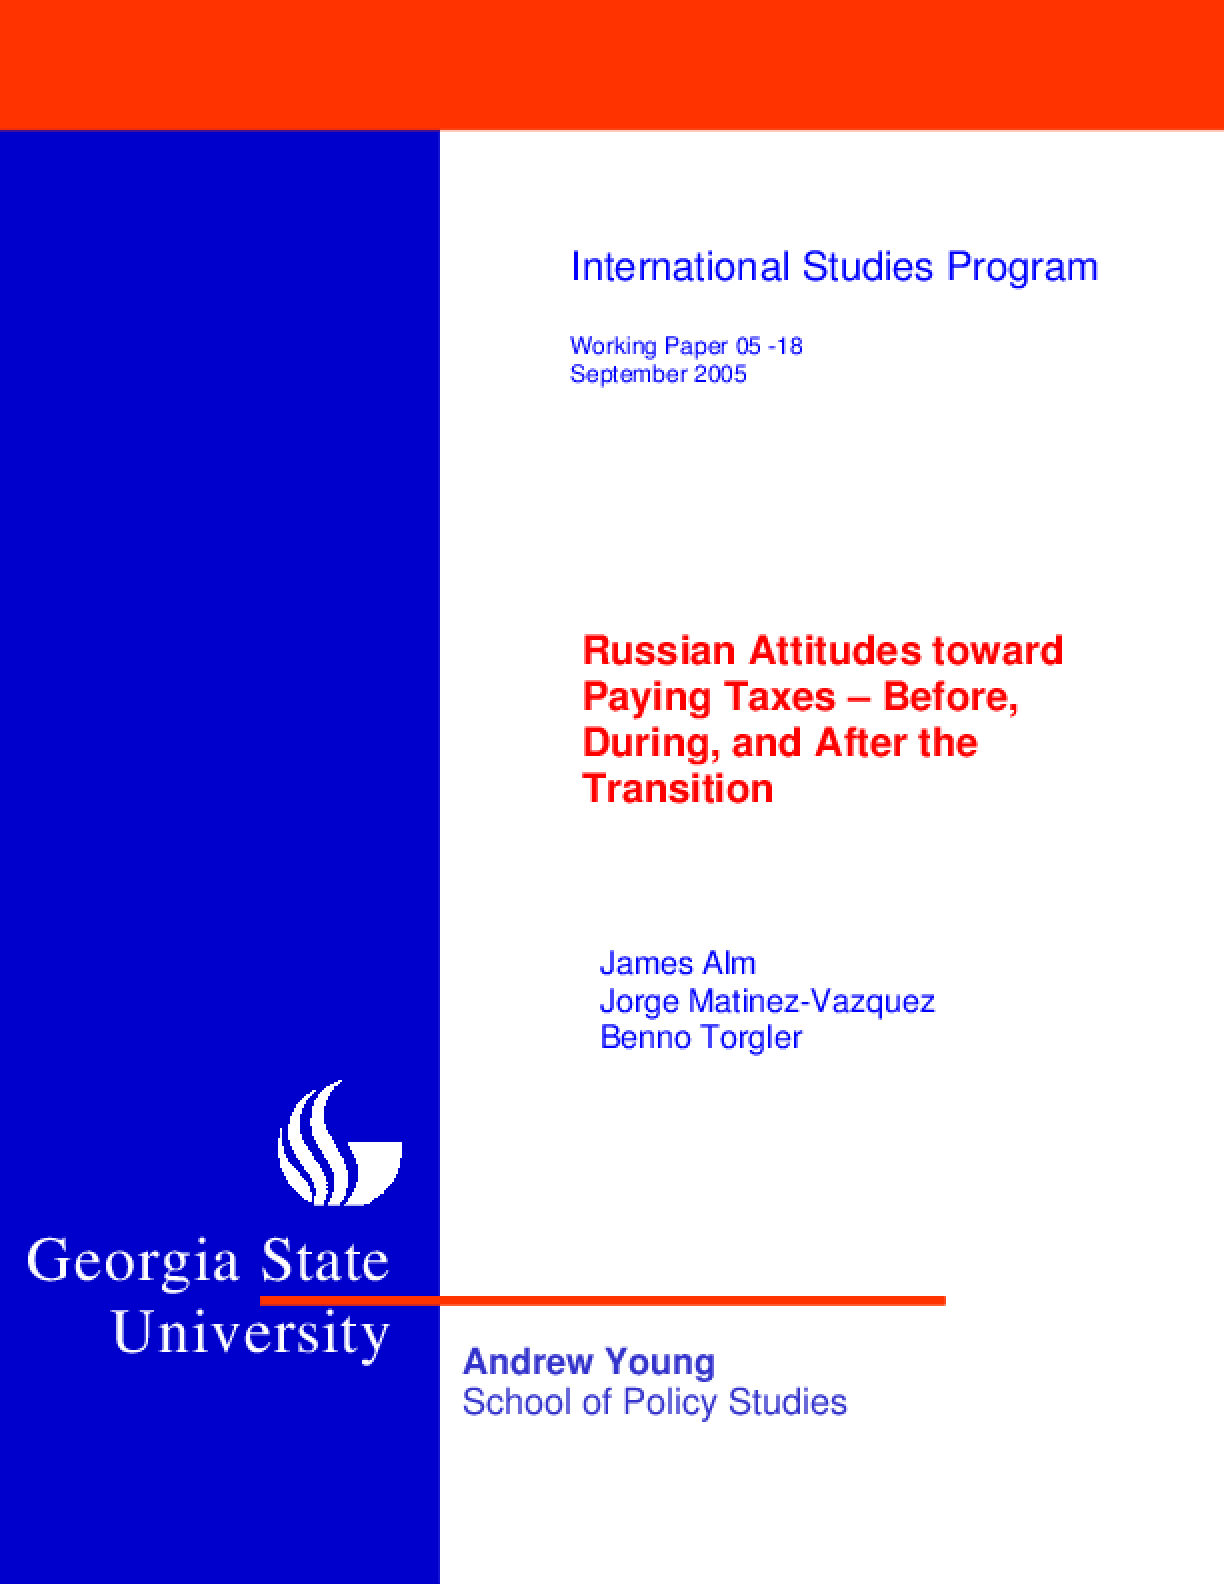 Russian Attitudes Toward Paying Taxes -- Before, During, and After the Transition